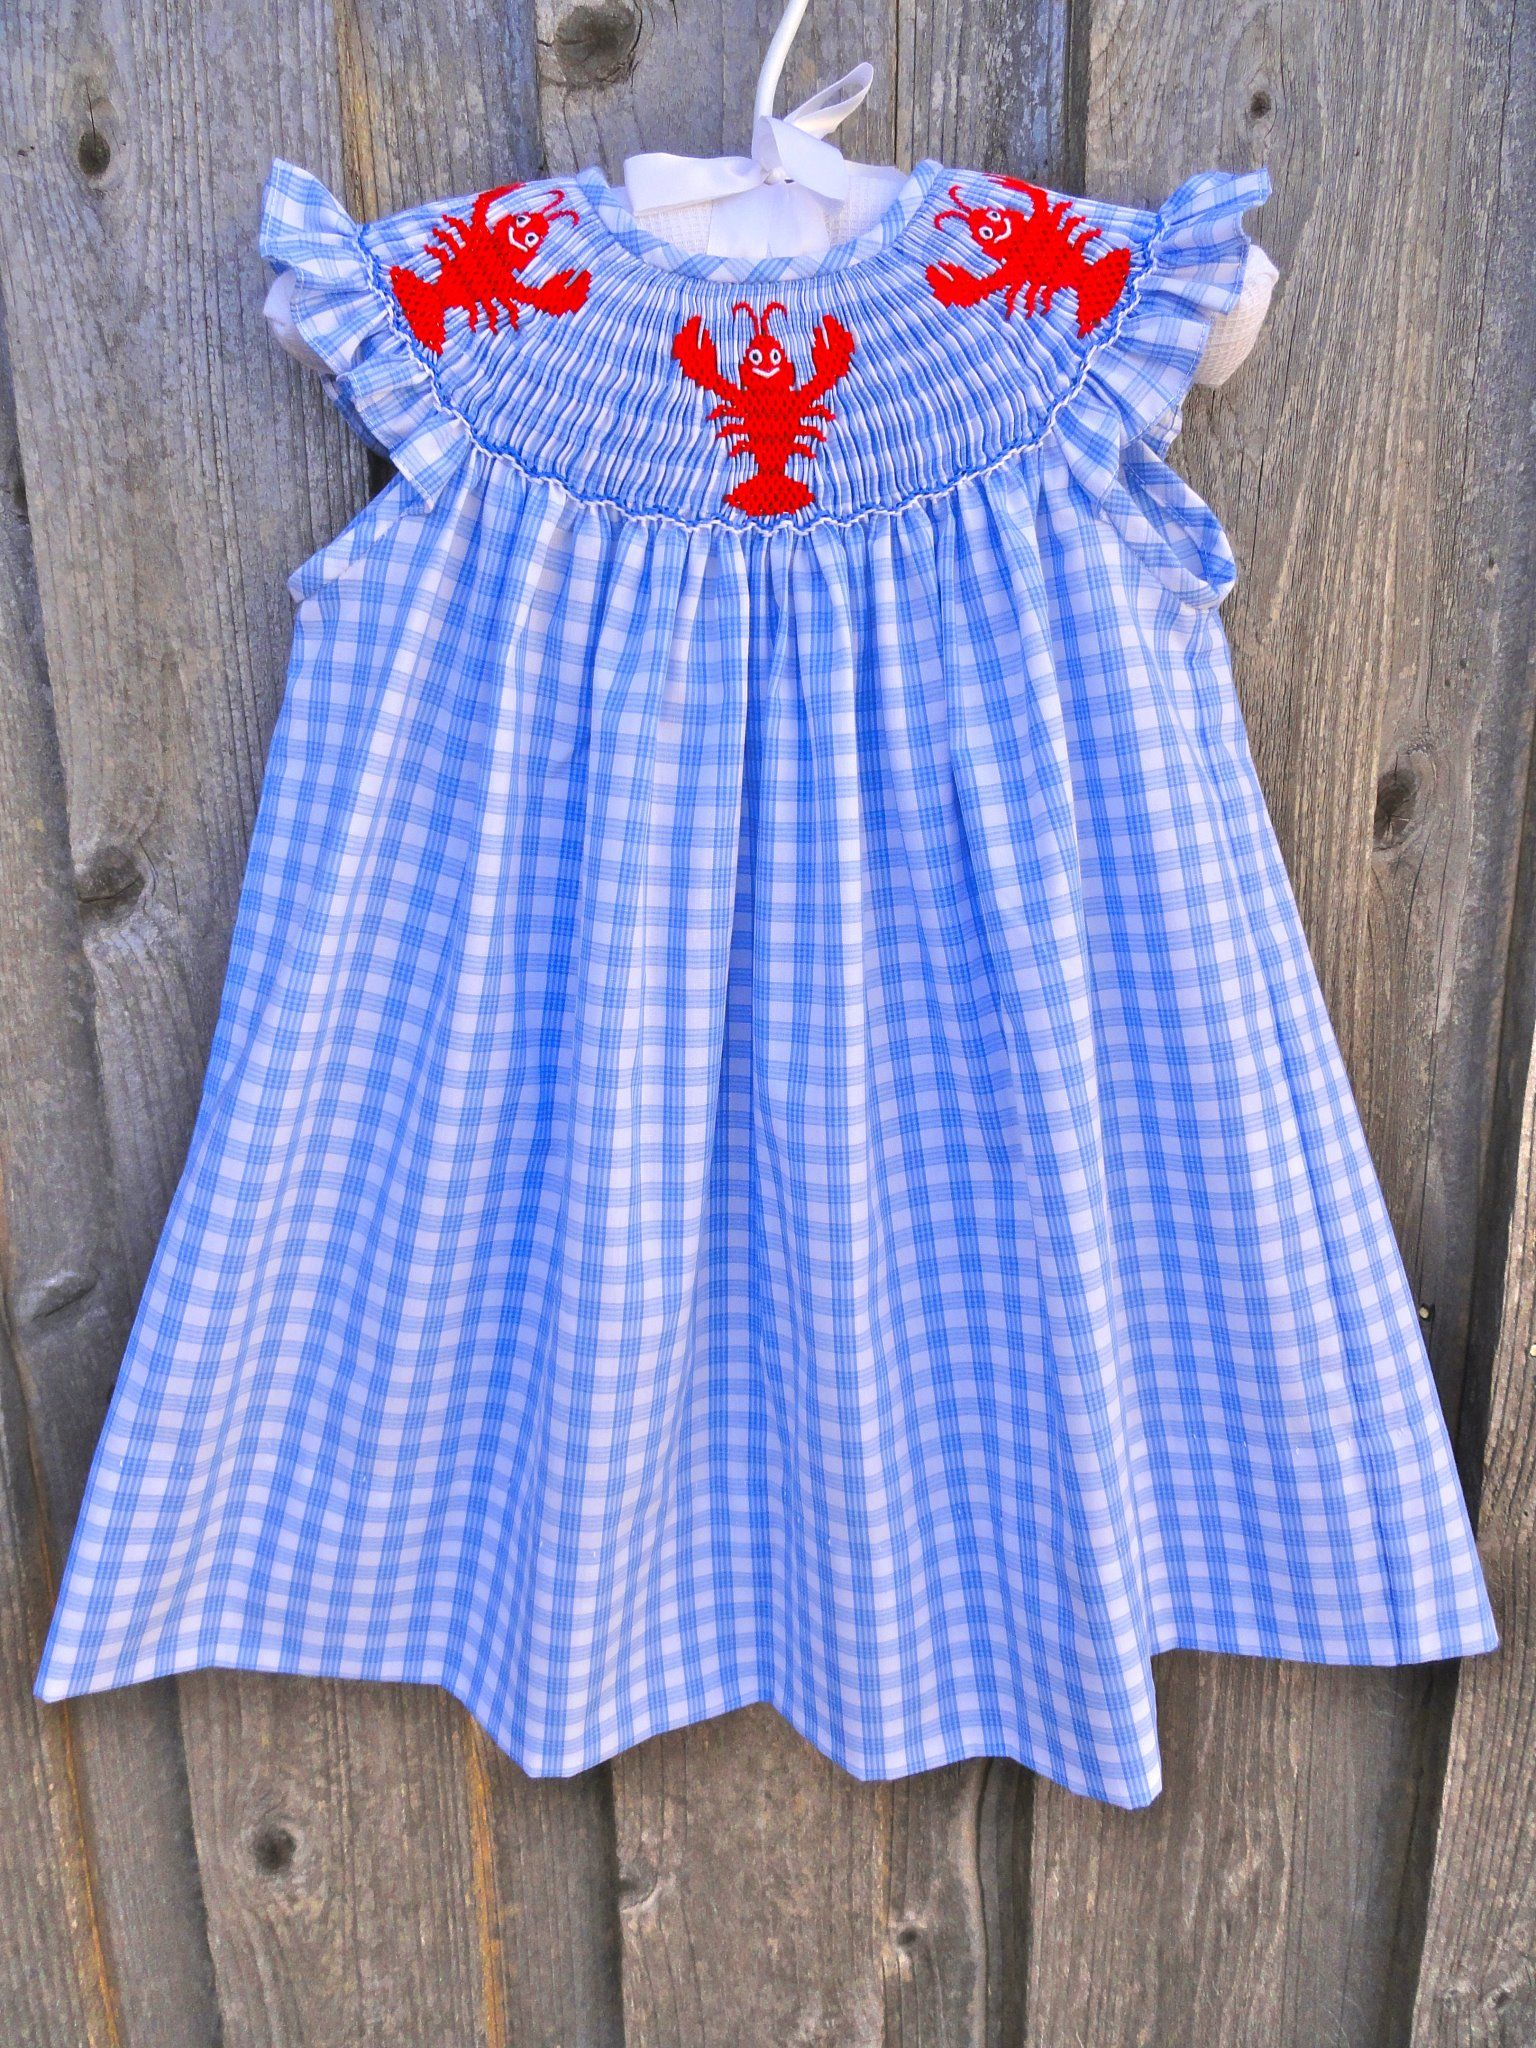 237dc6c147 Smocked Lobster (or Crawfish) Dress from Smocked Auctions